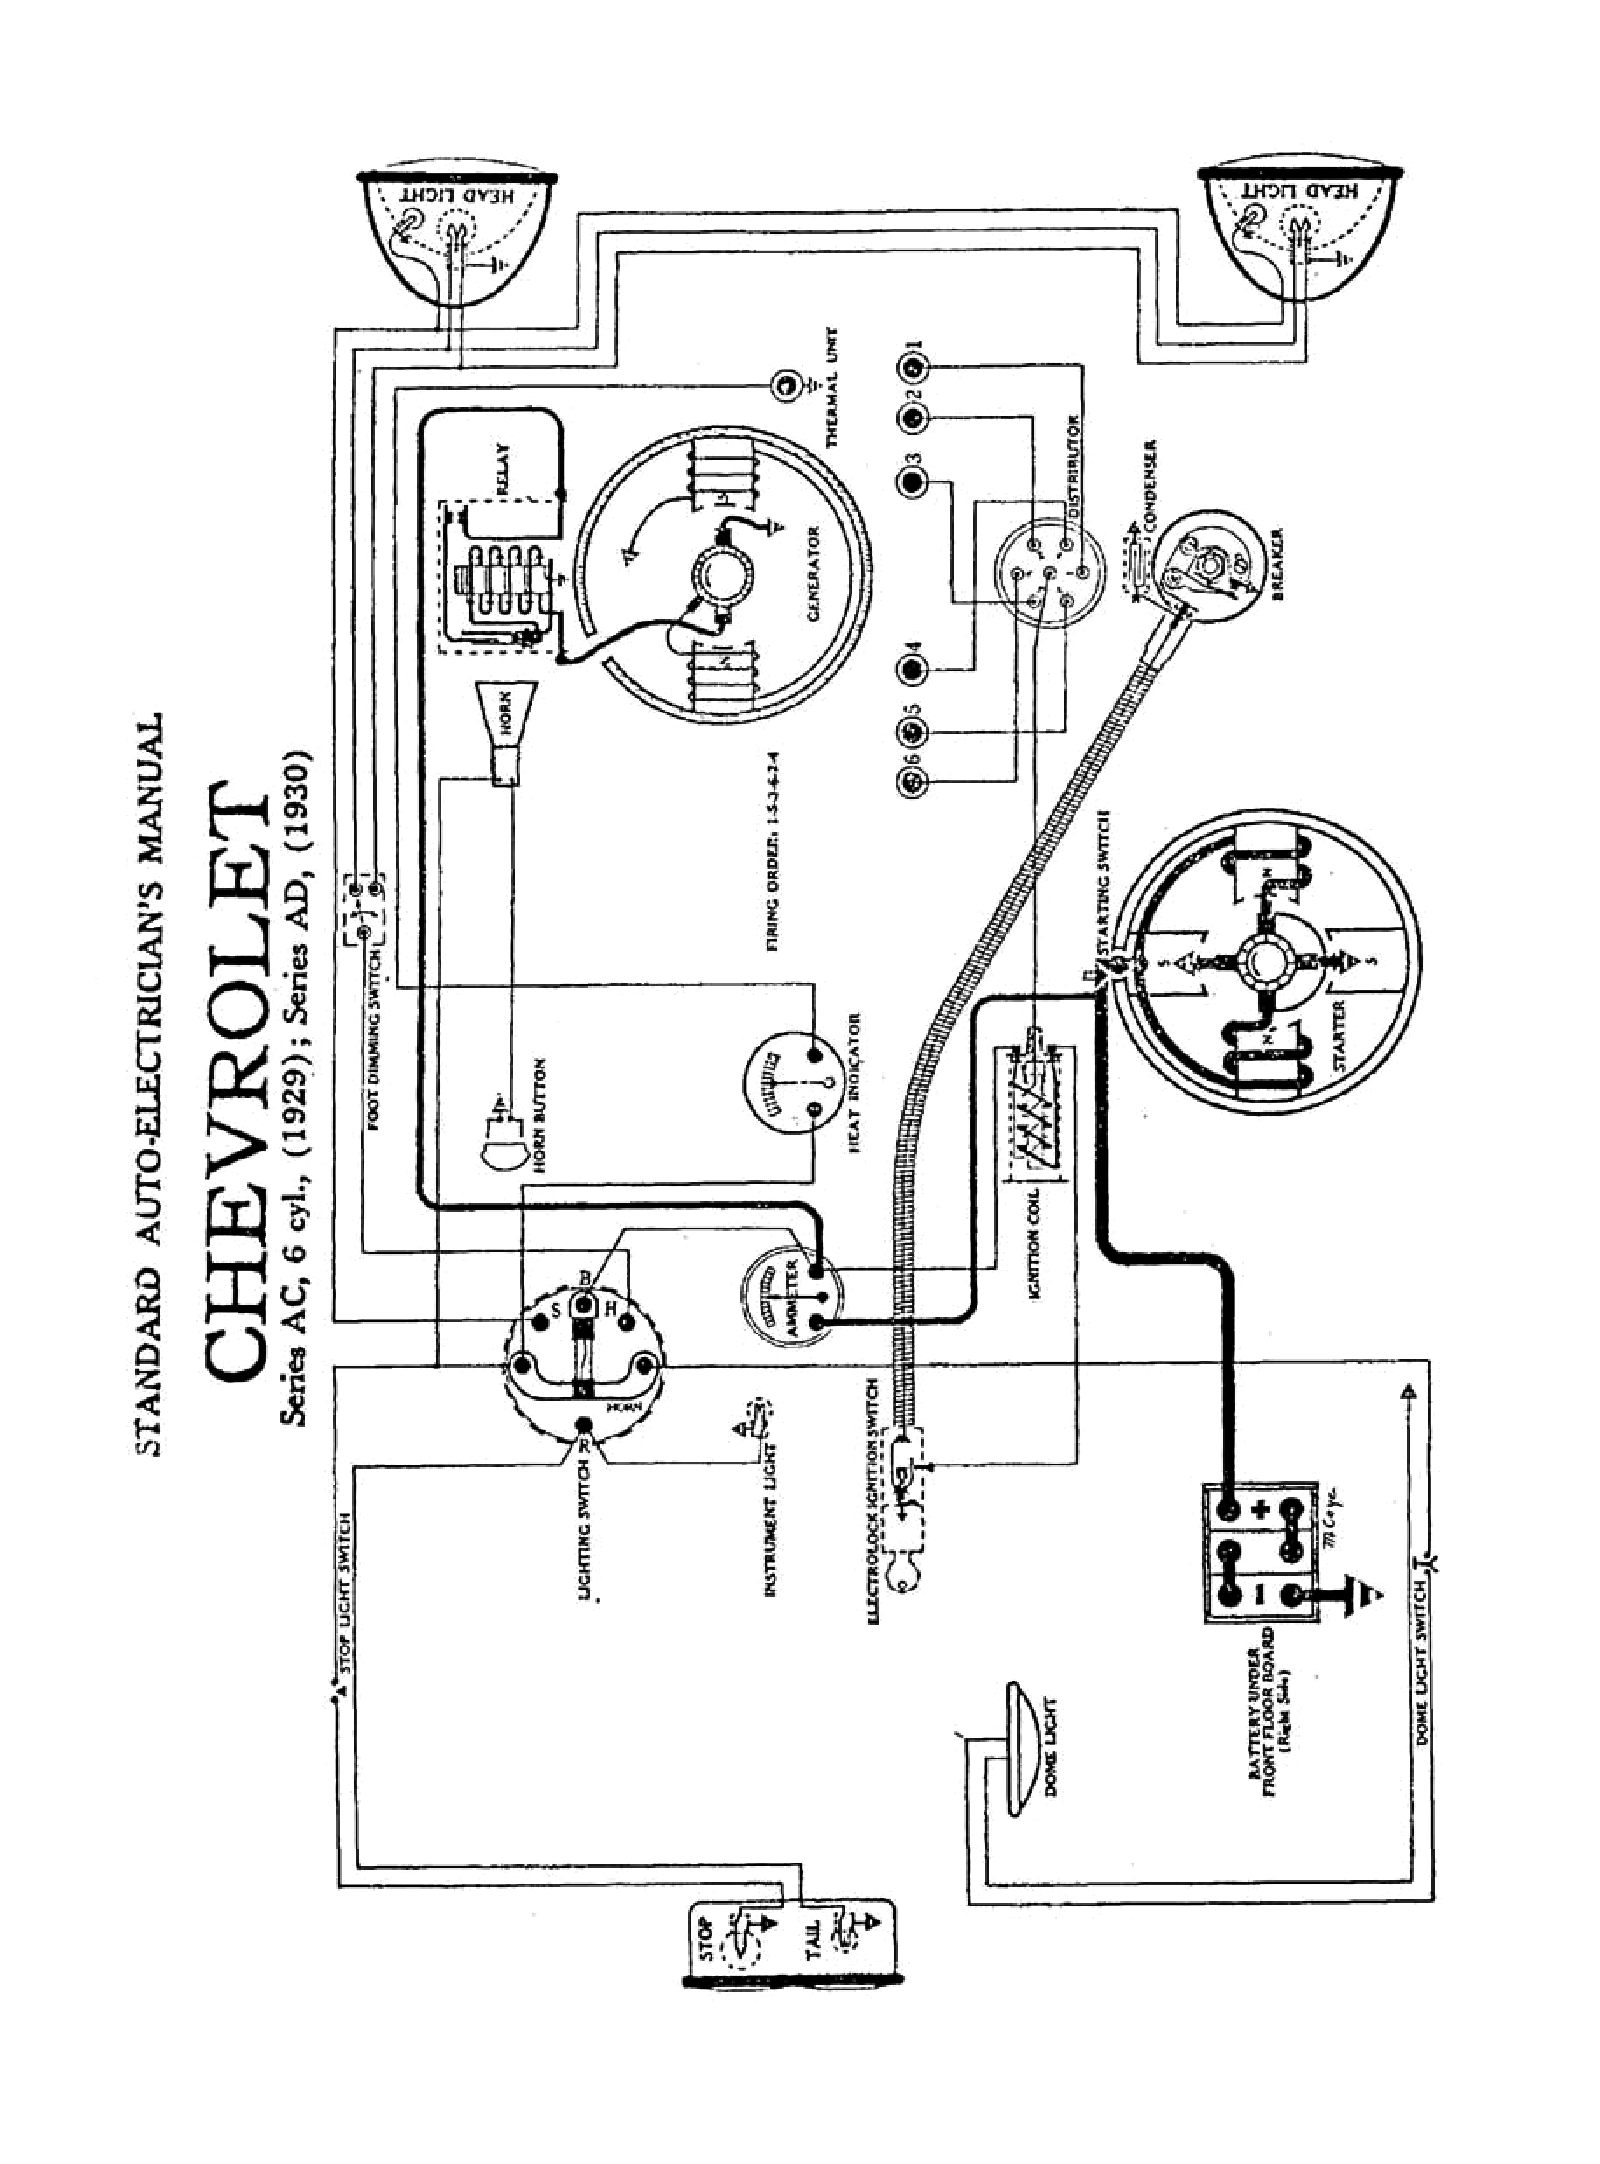 chevy wiring diagrams rh chevy oldcarmanualproject com a wiring diagram on a janitorial heater a wiring diagram on a janitorial heater